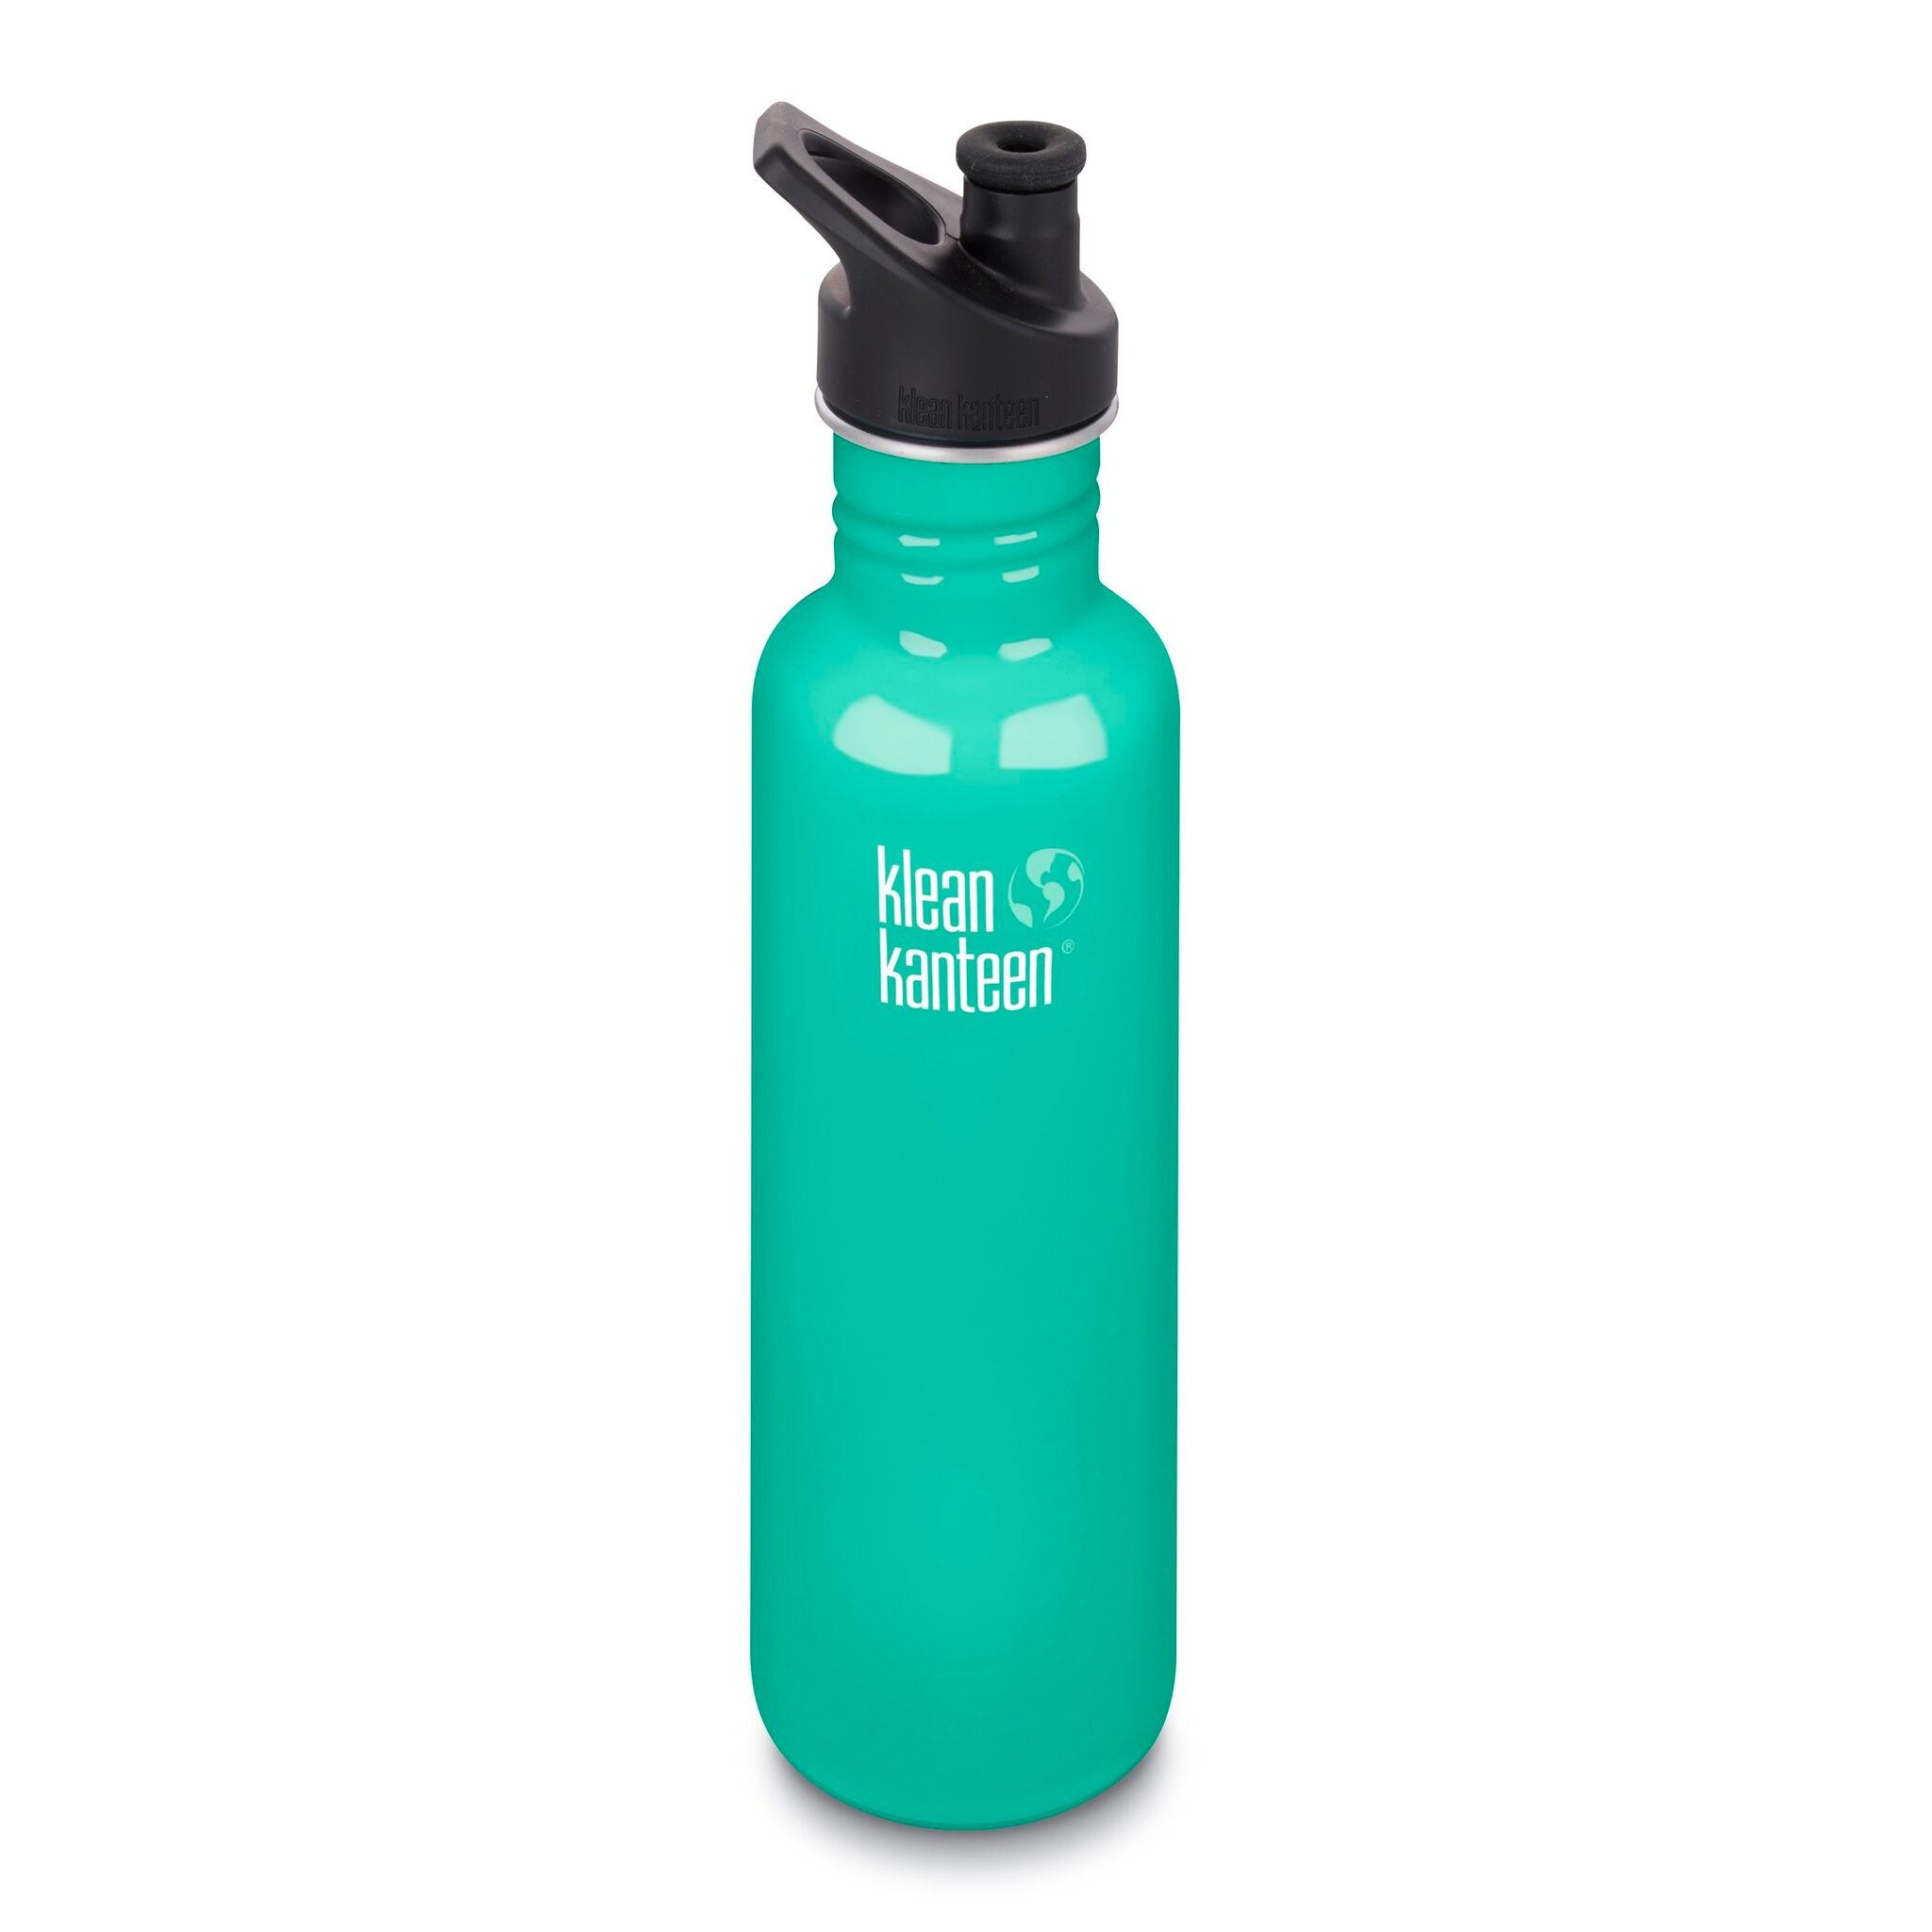 Klean Kanteen Stainless Steel Classic Water Bottle Klean Kanteen Water Bottles 800ml 27oz / Sea Crest at Little Earth Nest Eco Shop